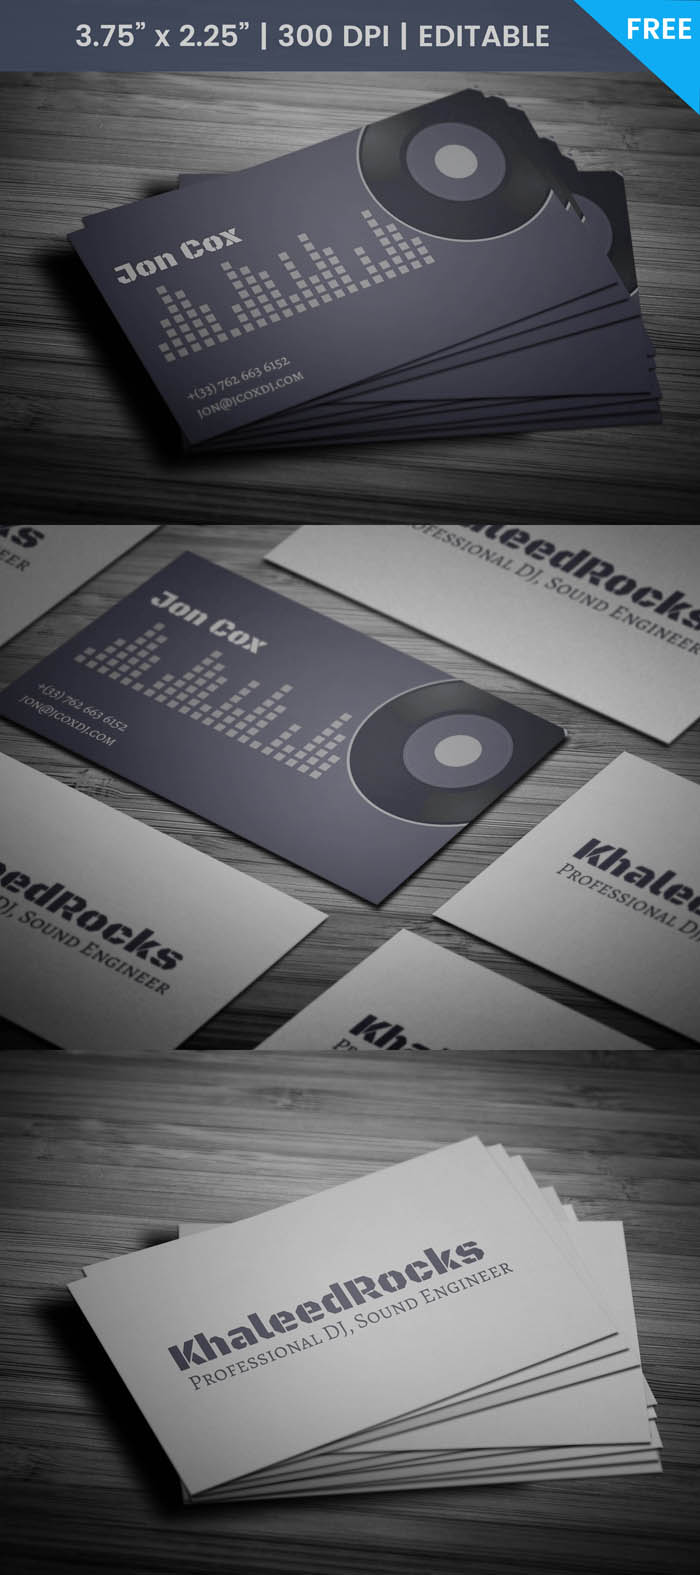 Party Dj Business Card - Full Preview